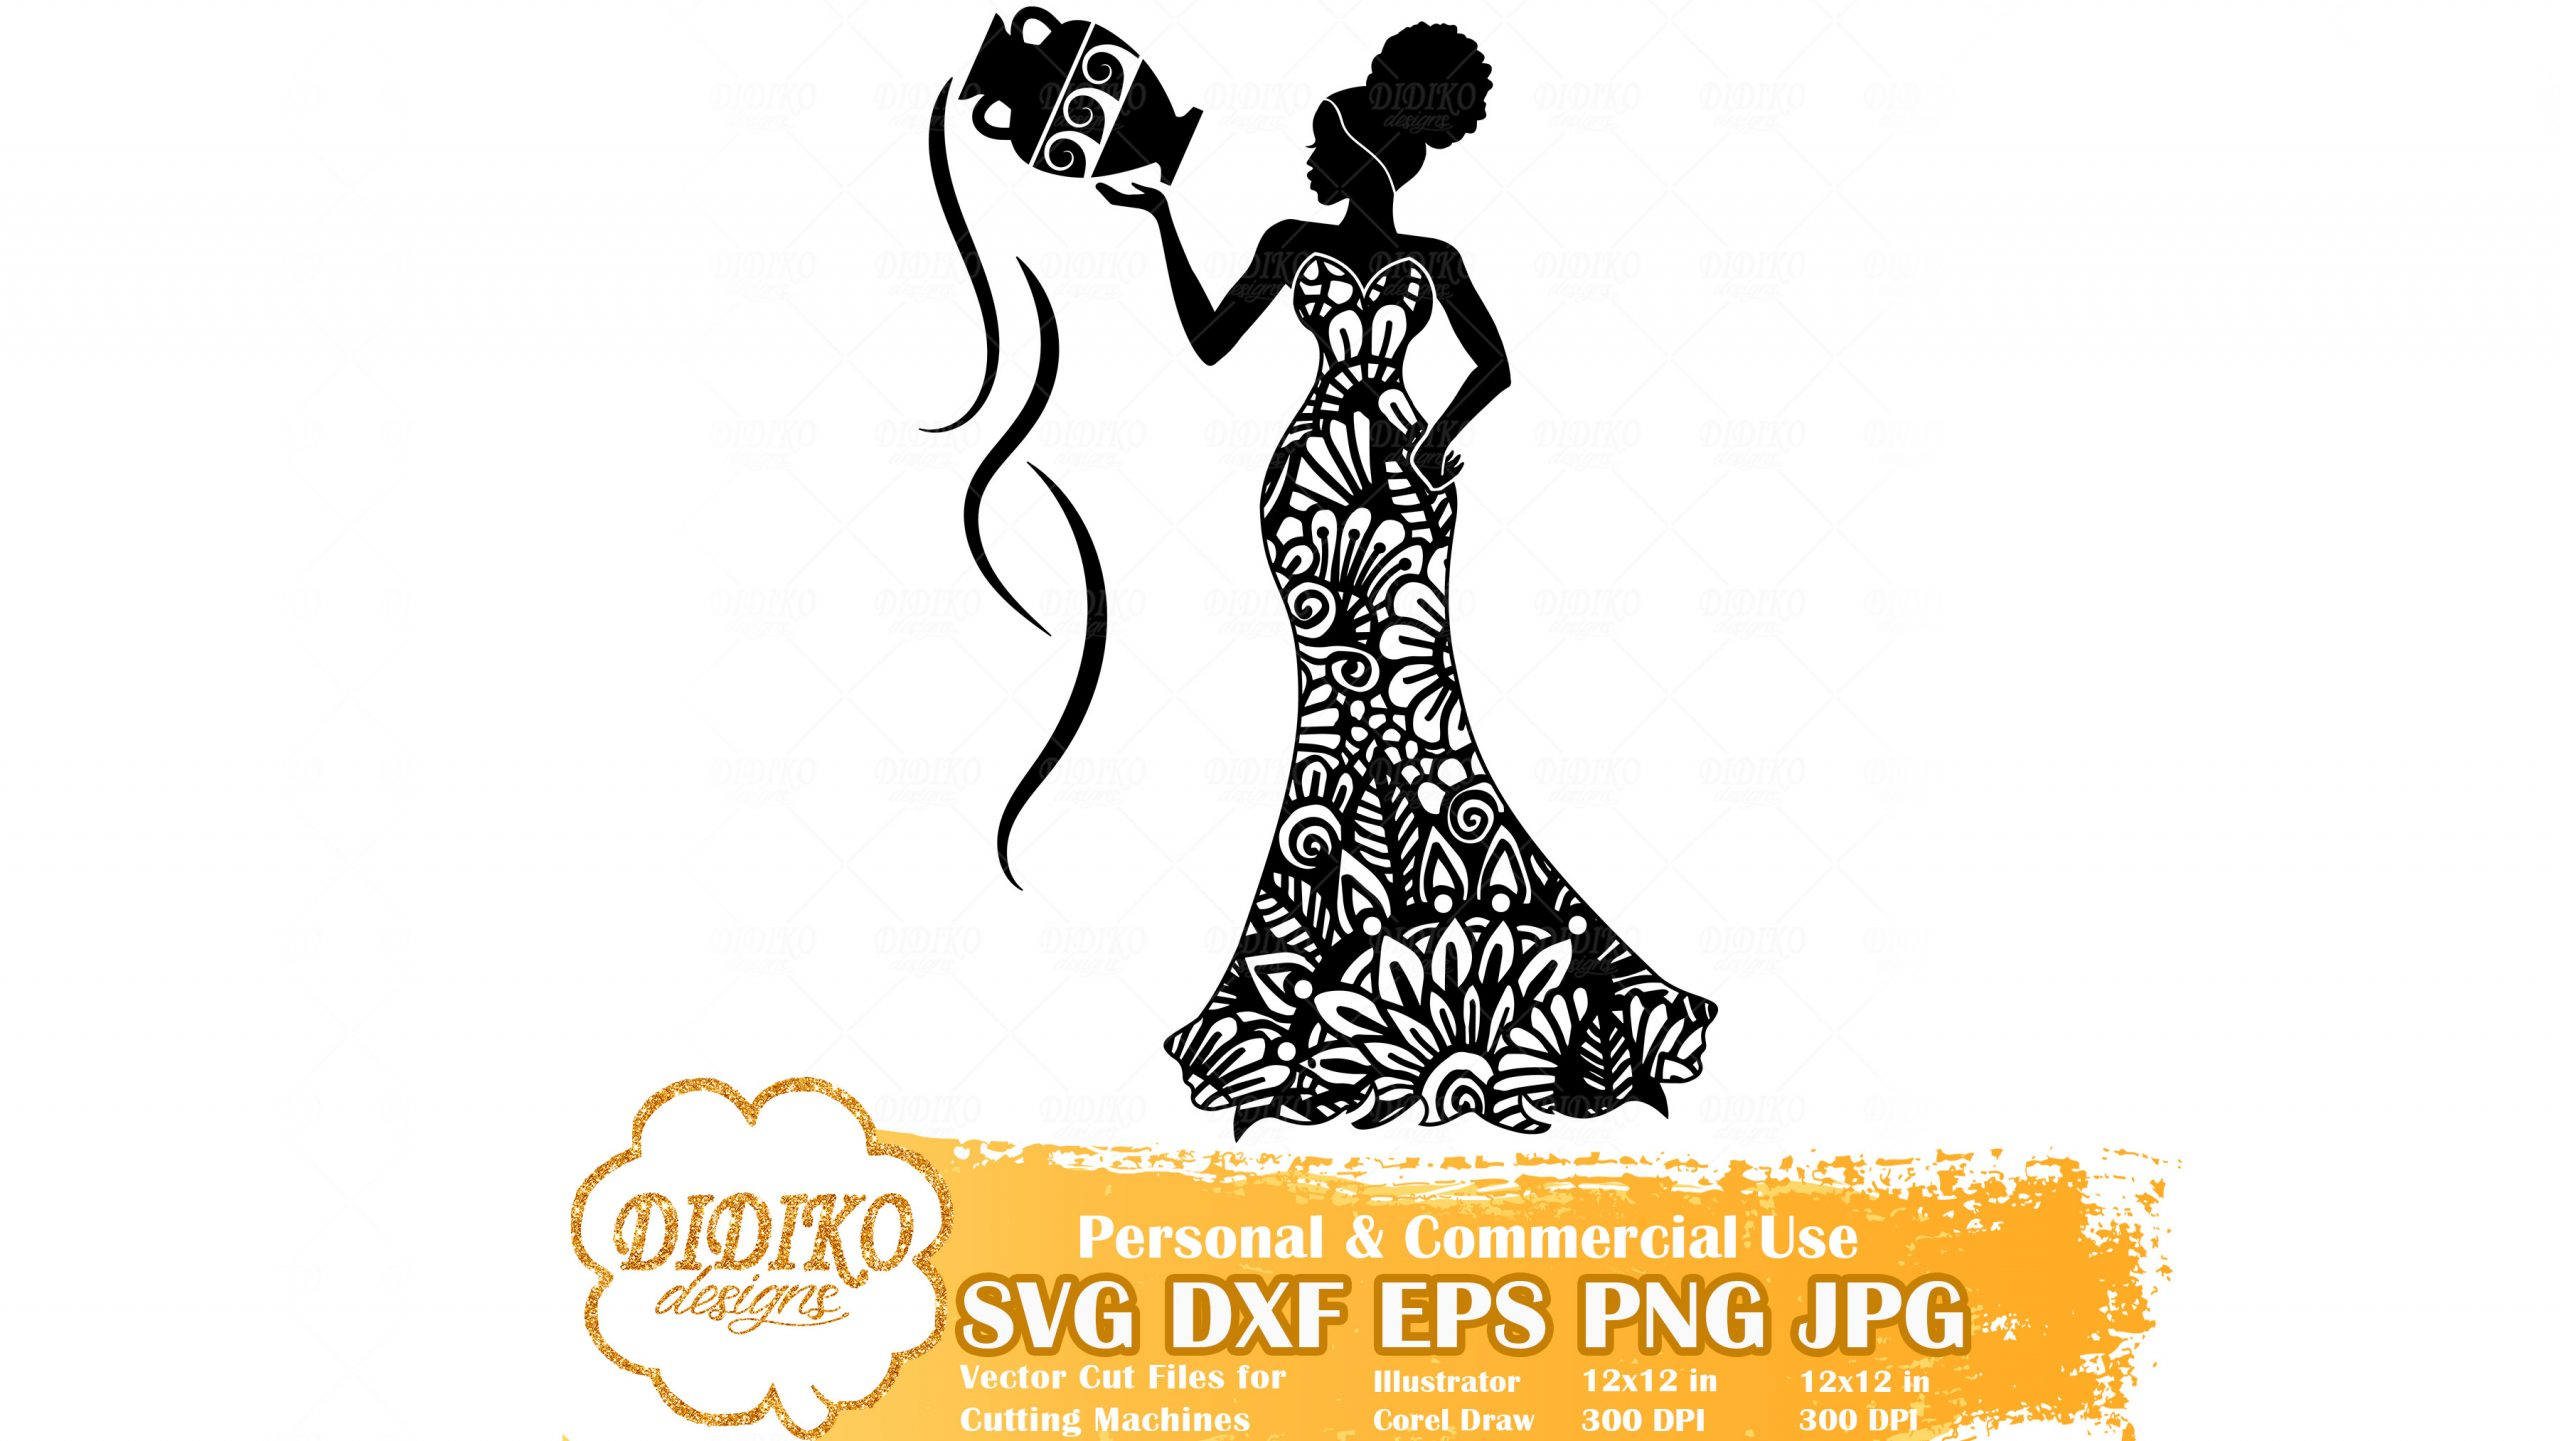 Black Woman Aquarius SVG